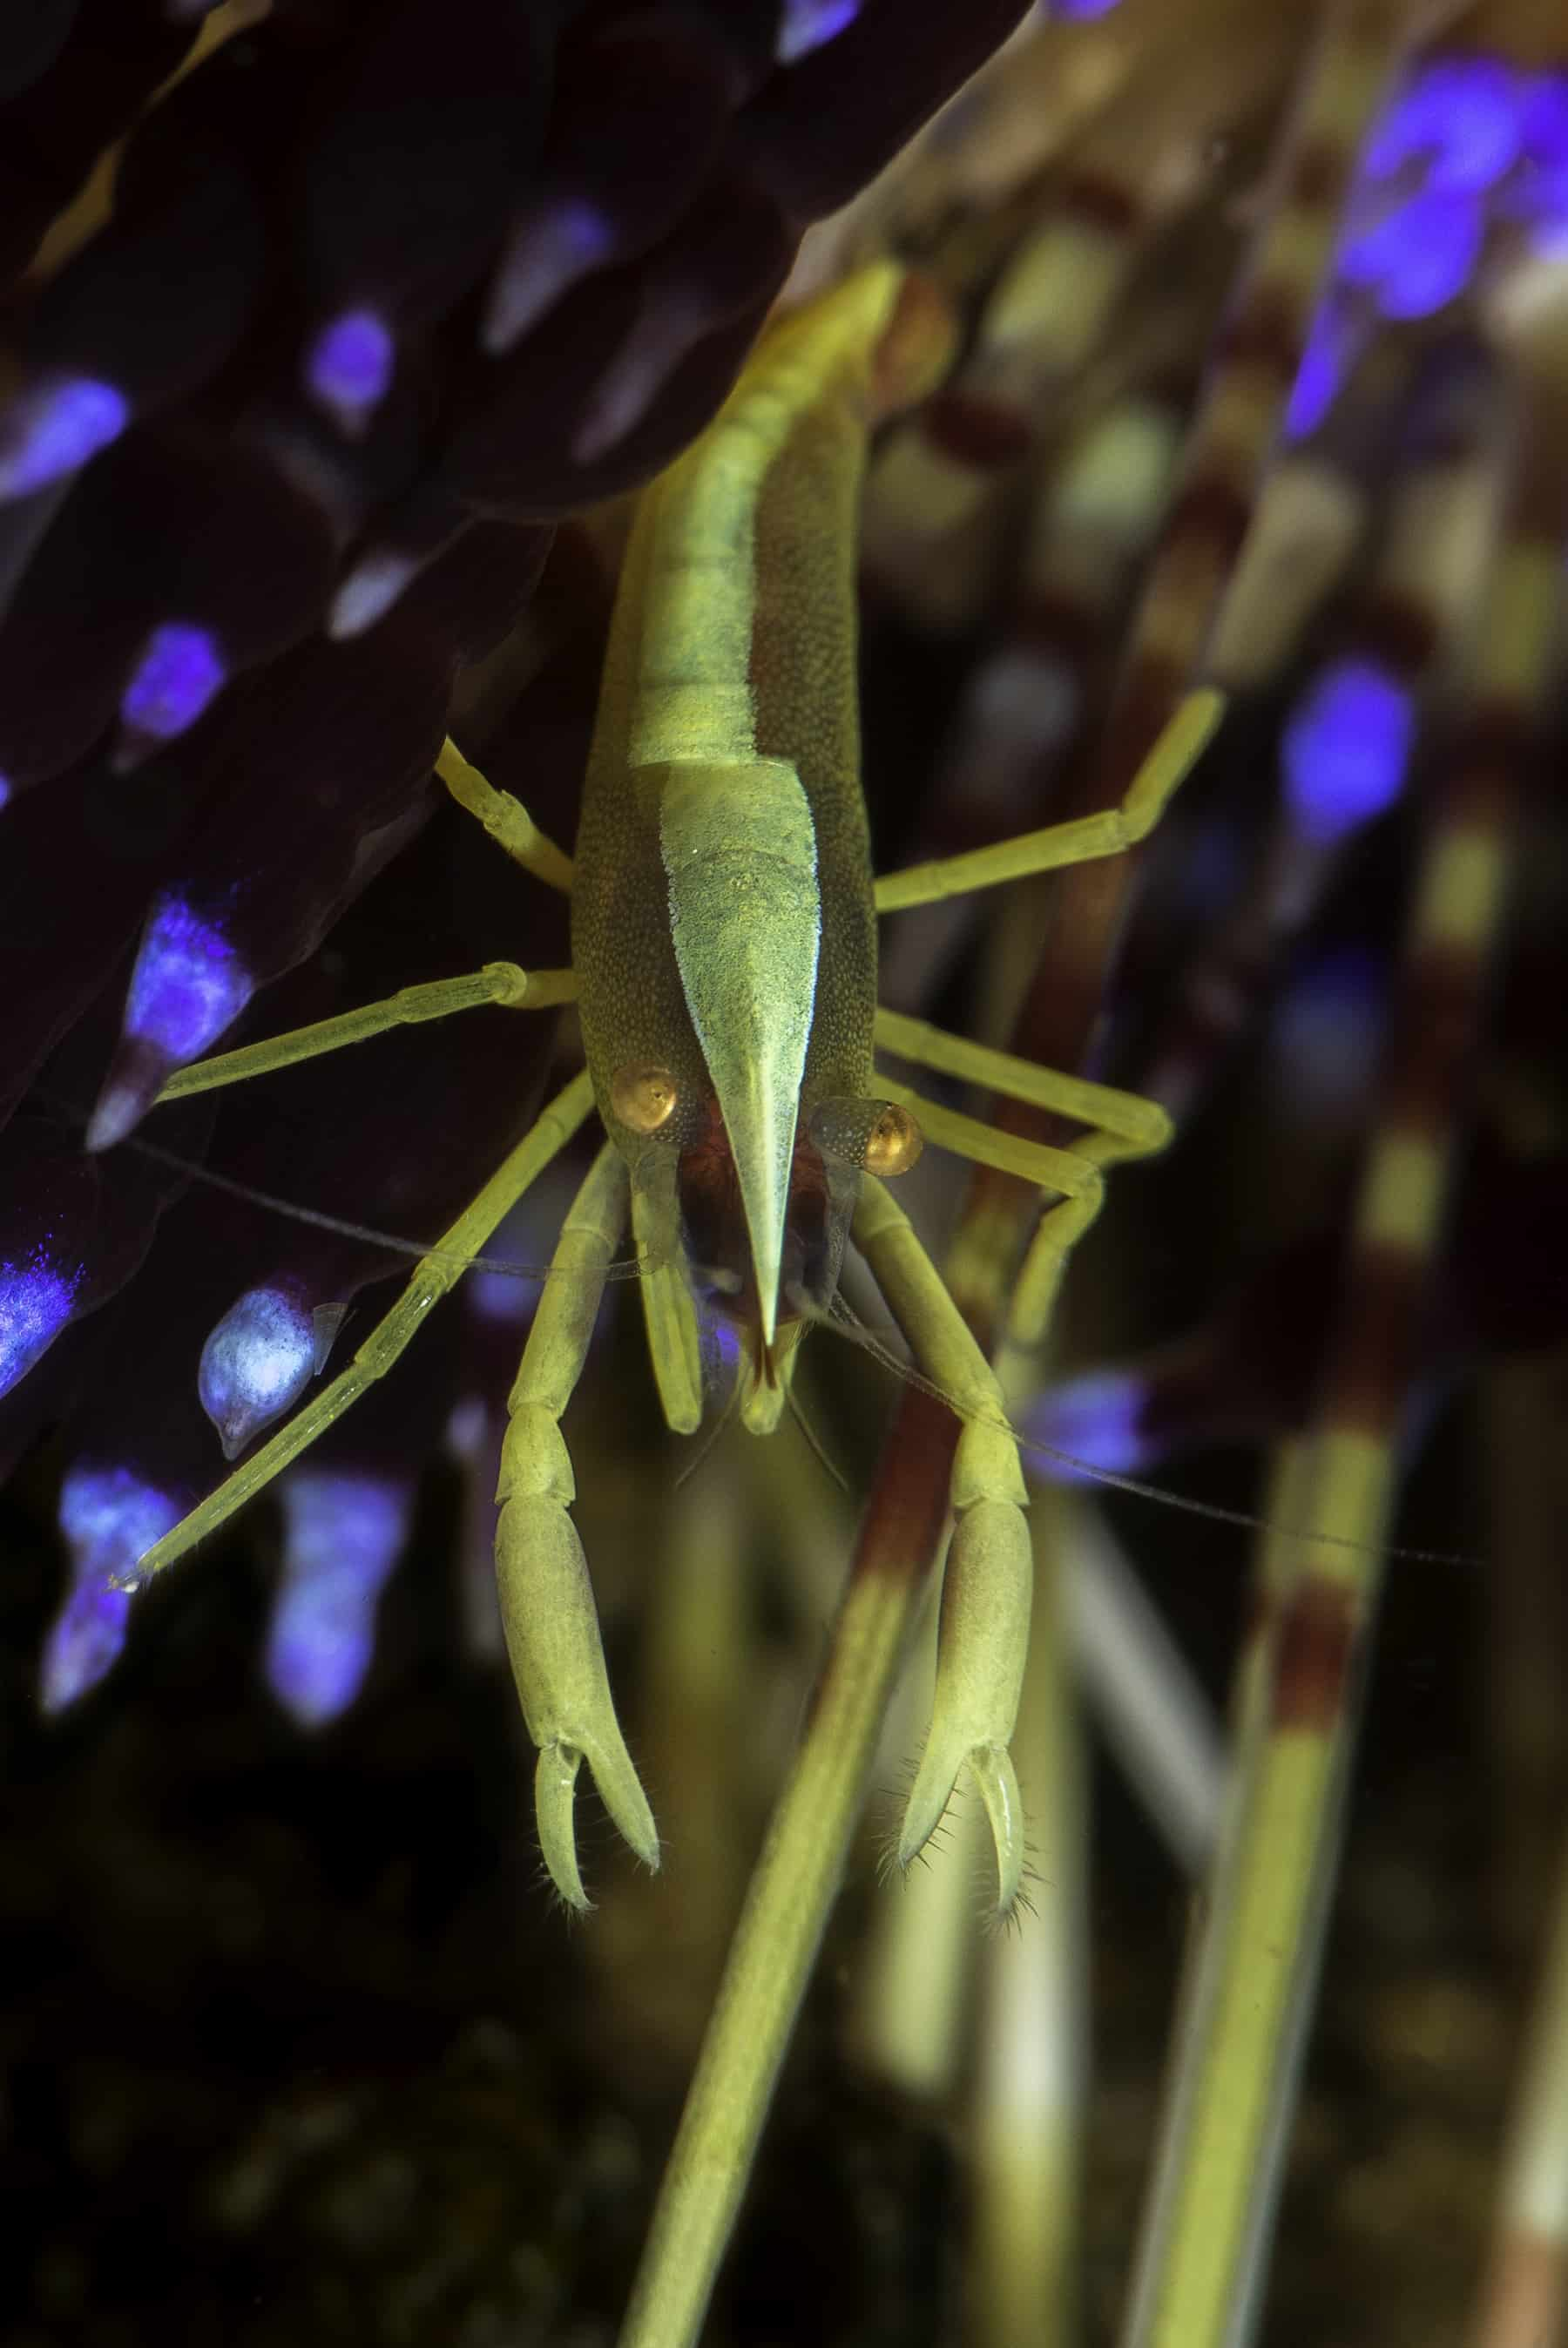 Brook's urchin shrimp